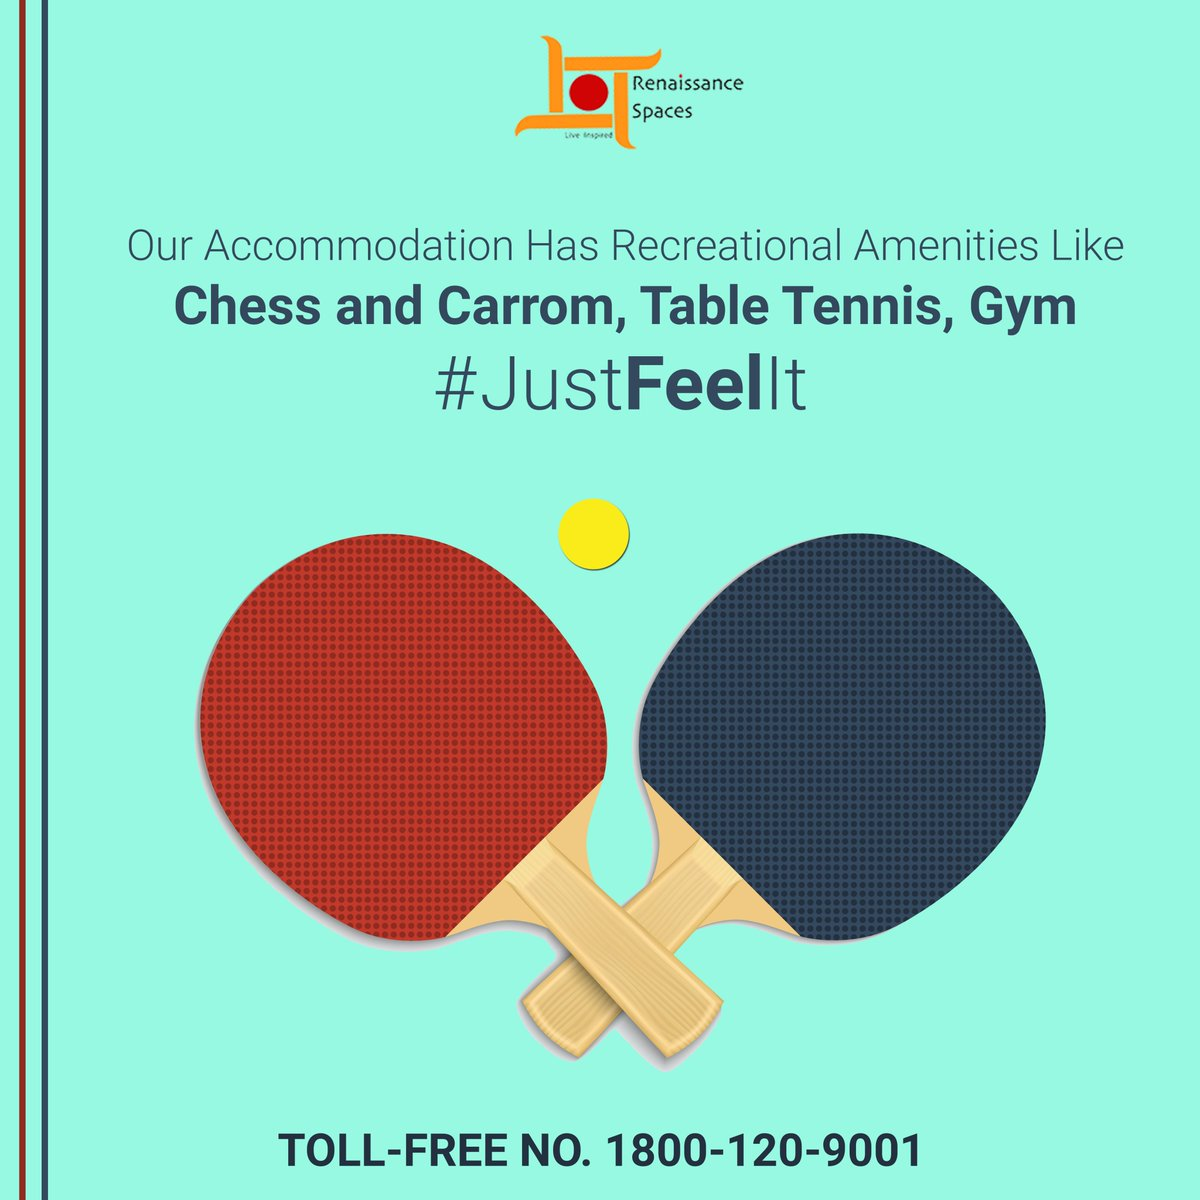 Our Accommodation Has Recreational Amenities Like Chess and Carrom, Table Tennis, Gym, etc... #JustFeelIt #DelhiUniversity #DU #NorthCampus #BoysPG #GirlsPG #SRCC Learn More: http://www.renaissance-spaces.in JOIN OUR COMMUNITY - TOLL-FREE NO. 1800-120-9001